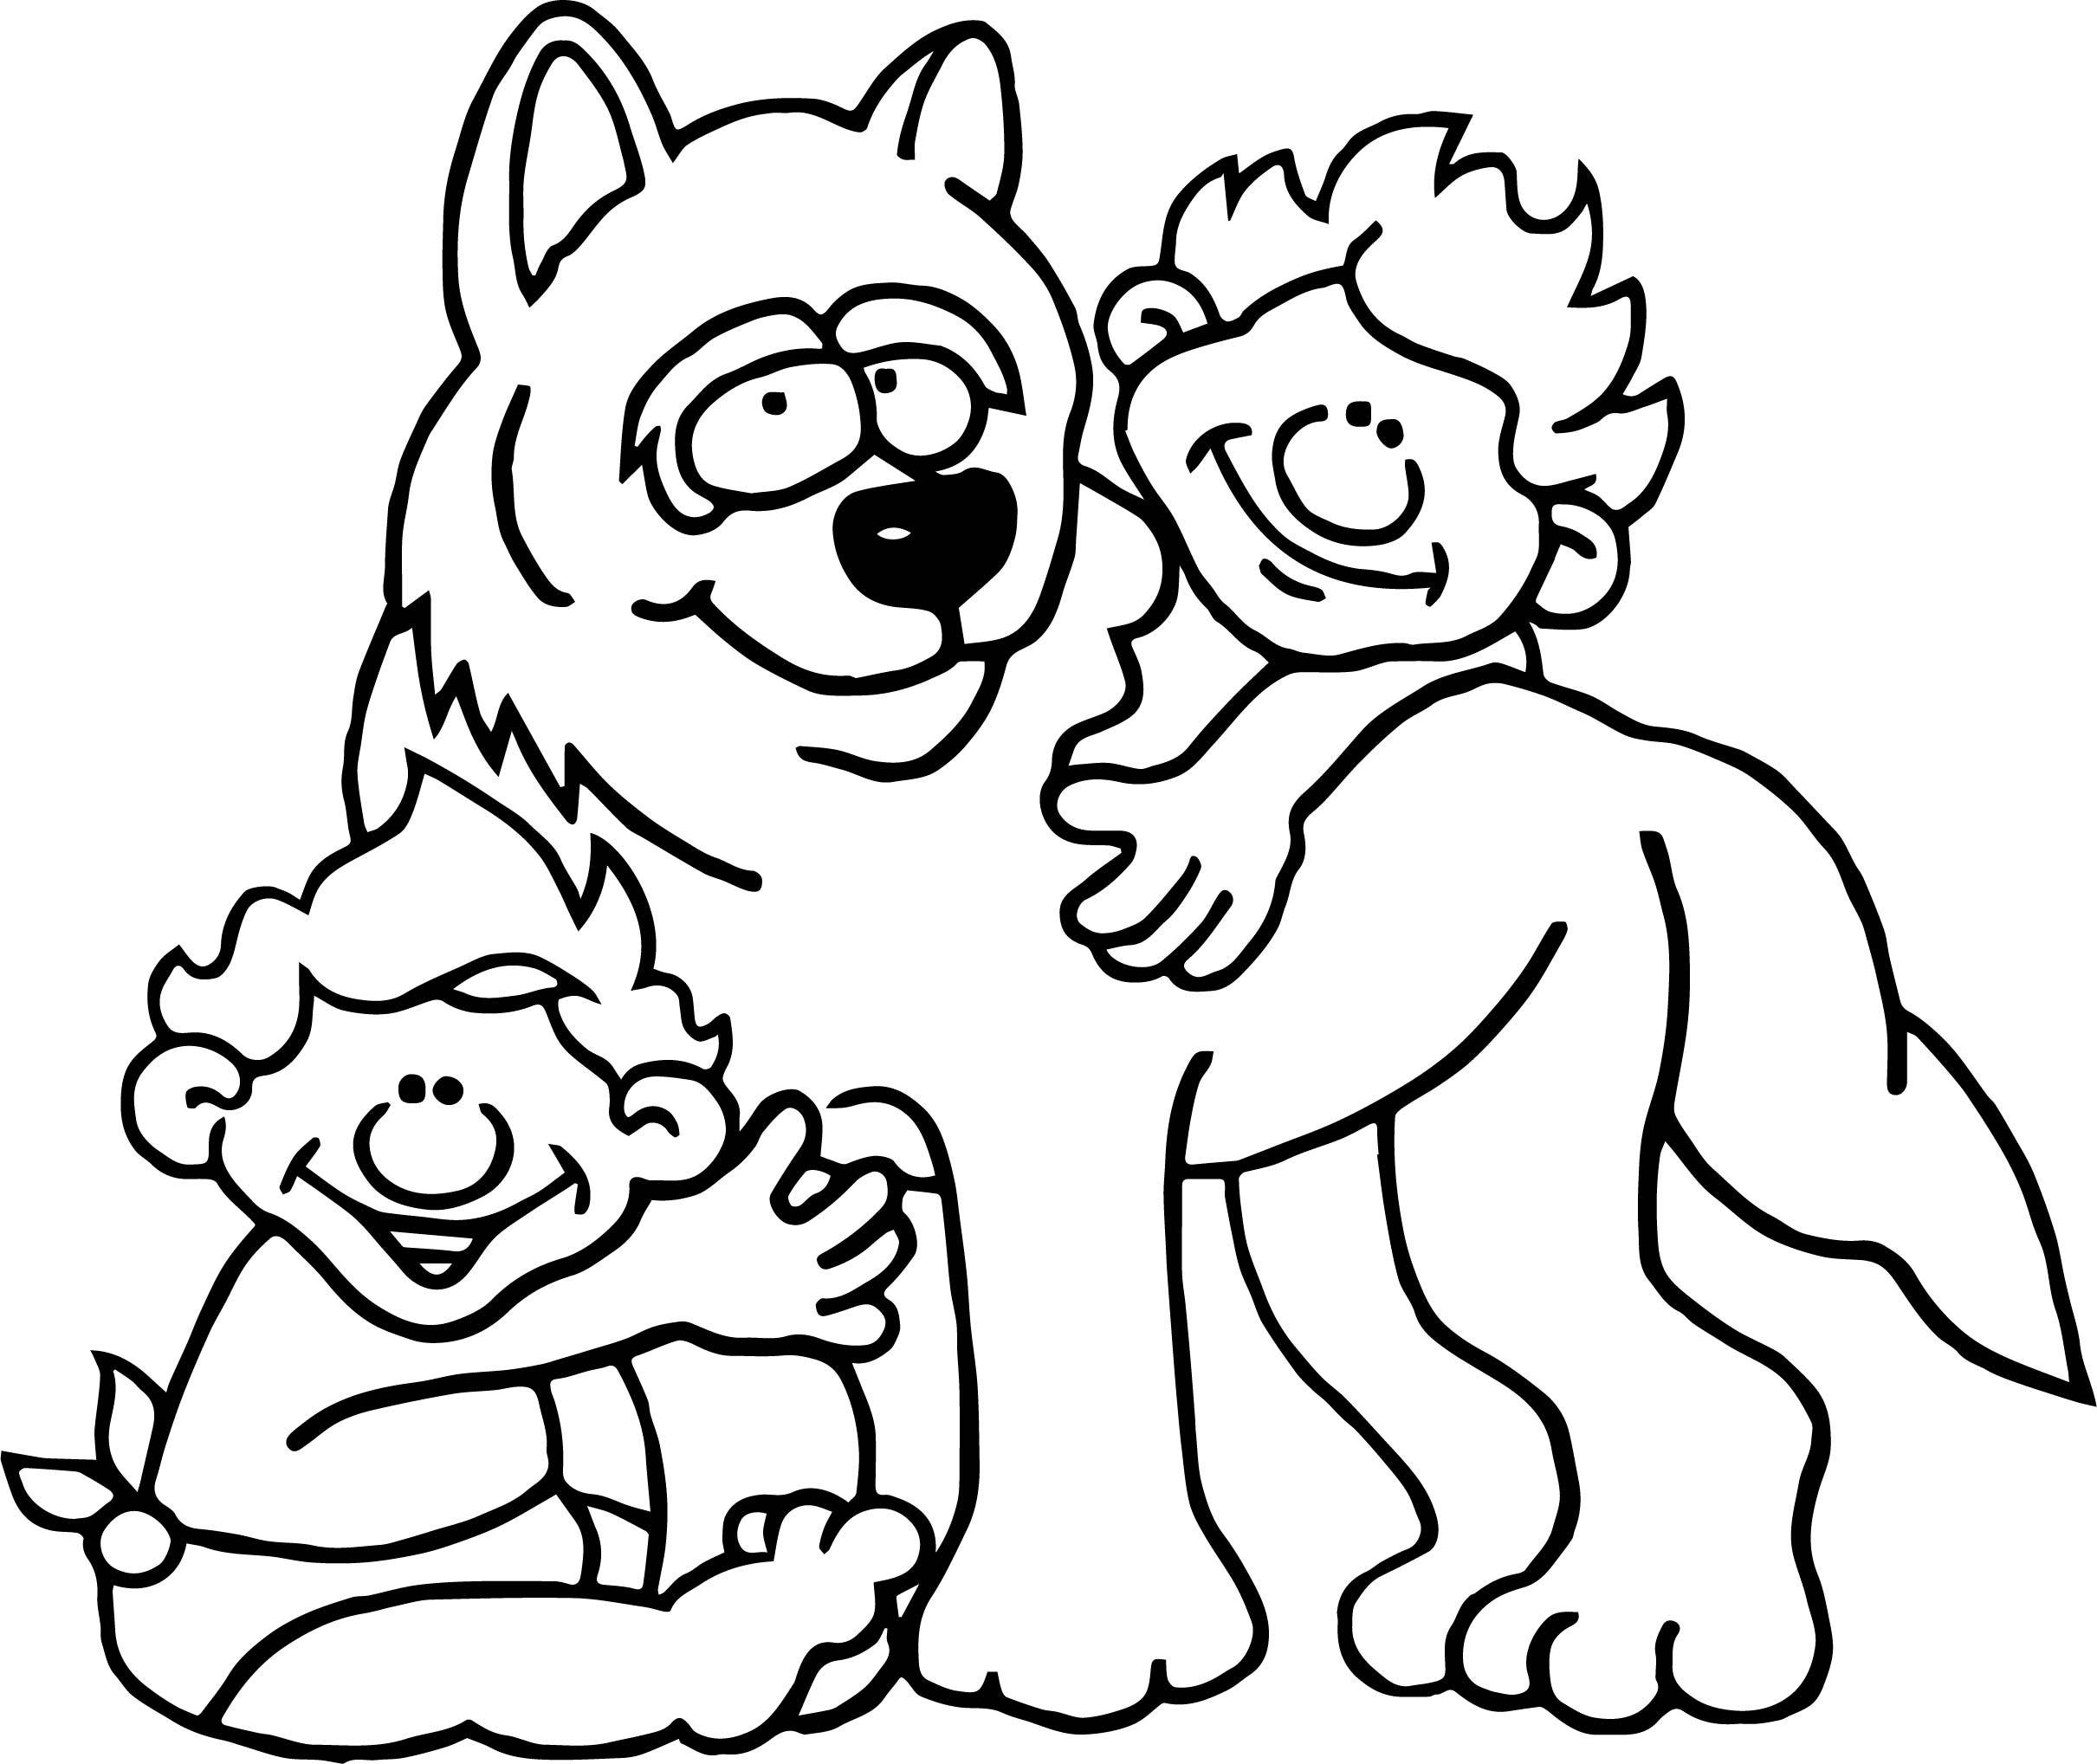 Awesome Romulus Remus And Child Coloring Page With Images